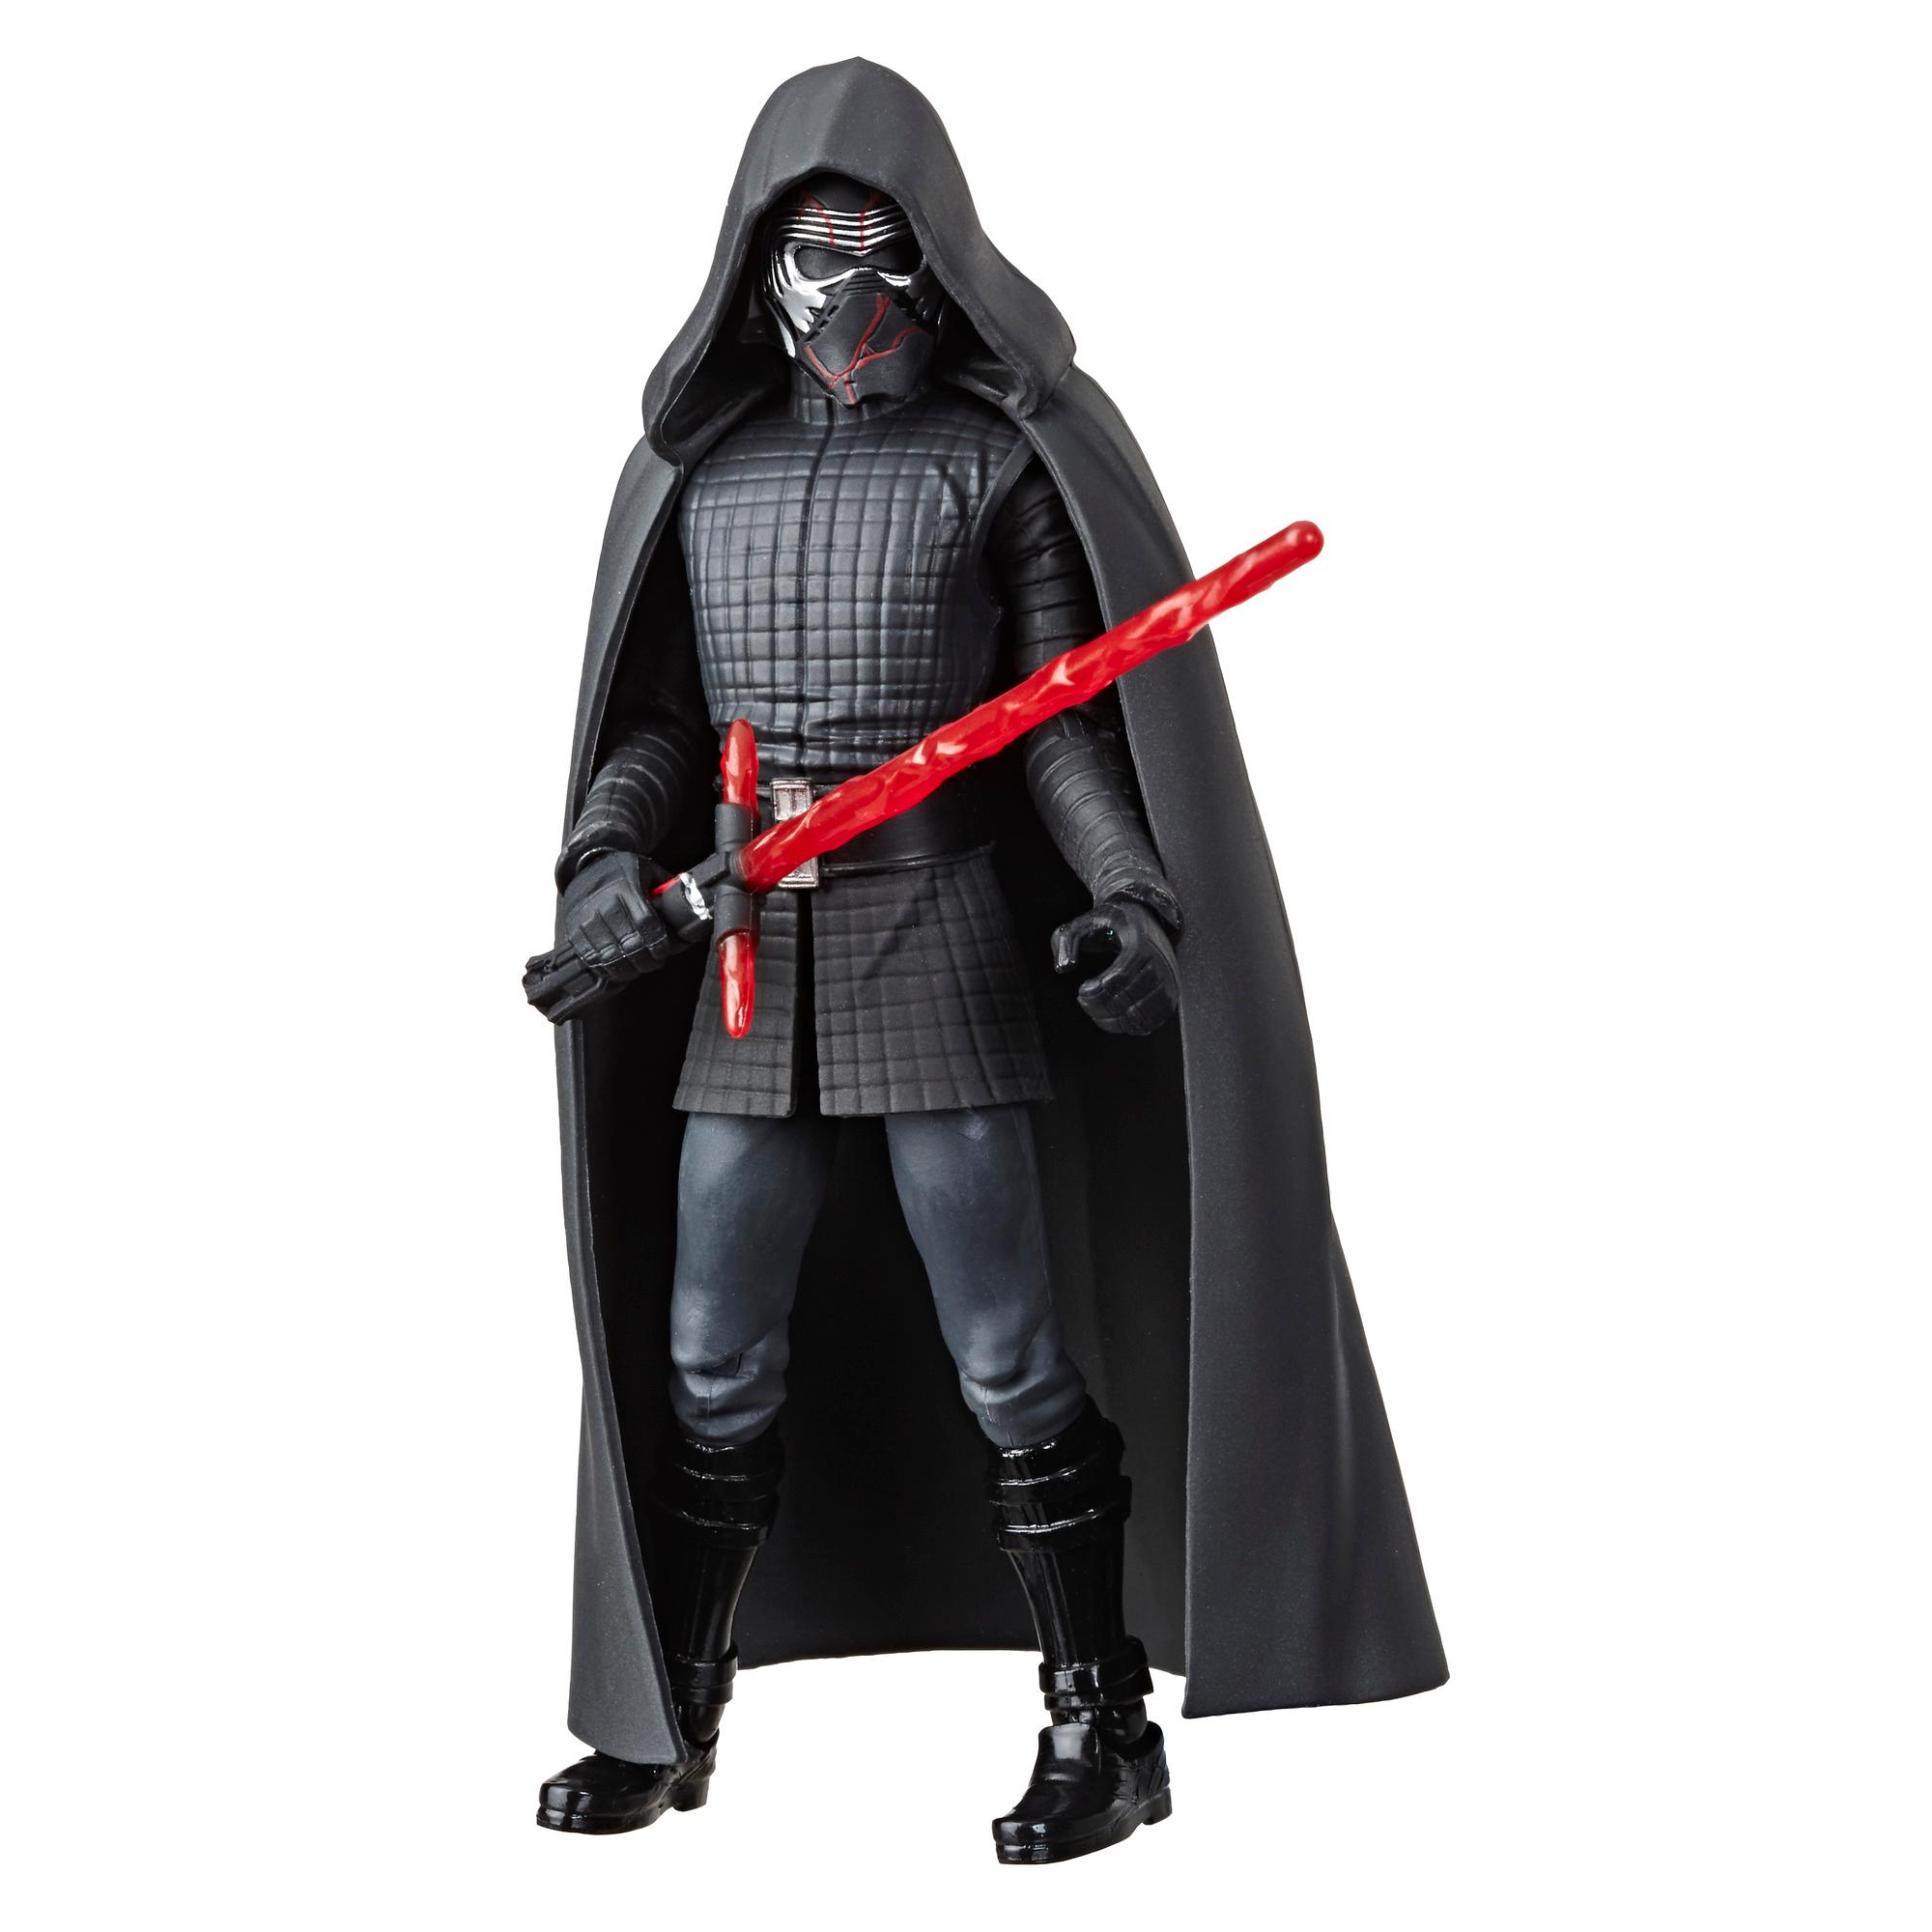 Star Wars Galaxy of Adventures Supreme Leader Kylo Ren 5-Inch-Scale Action Figure